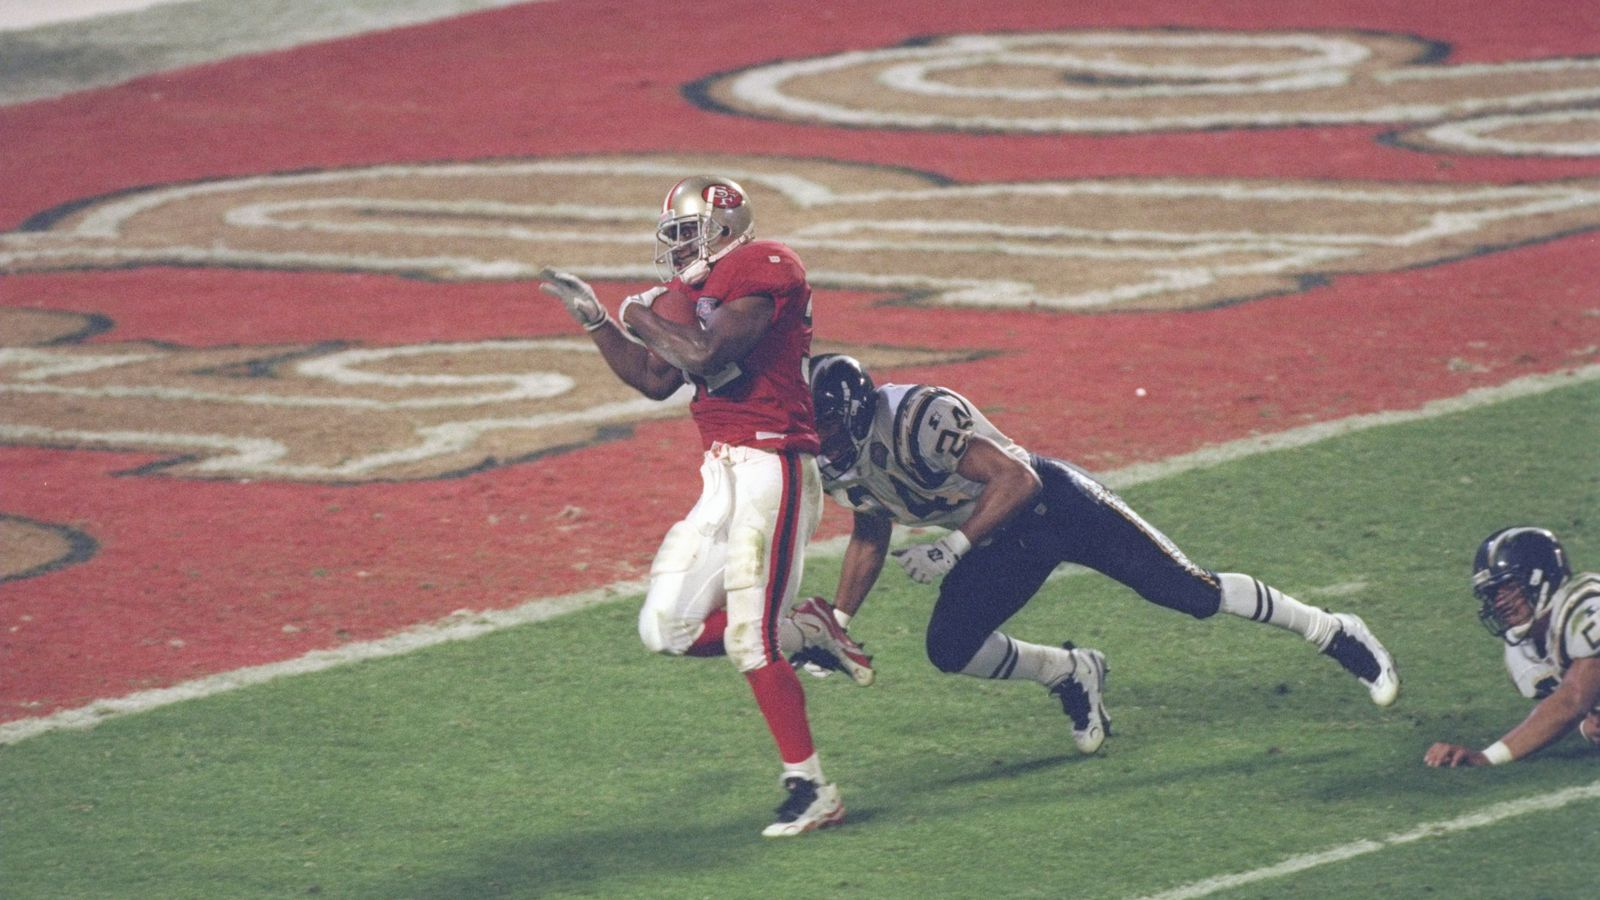 49ers Vs Chargers Preseason 2015 Game Time Tv Schedule